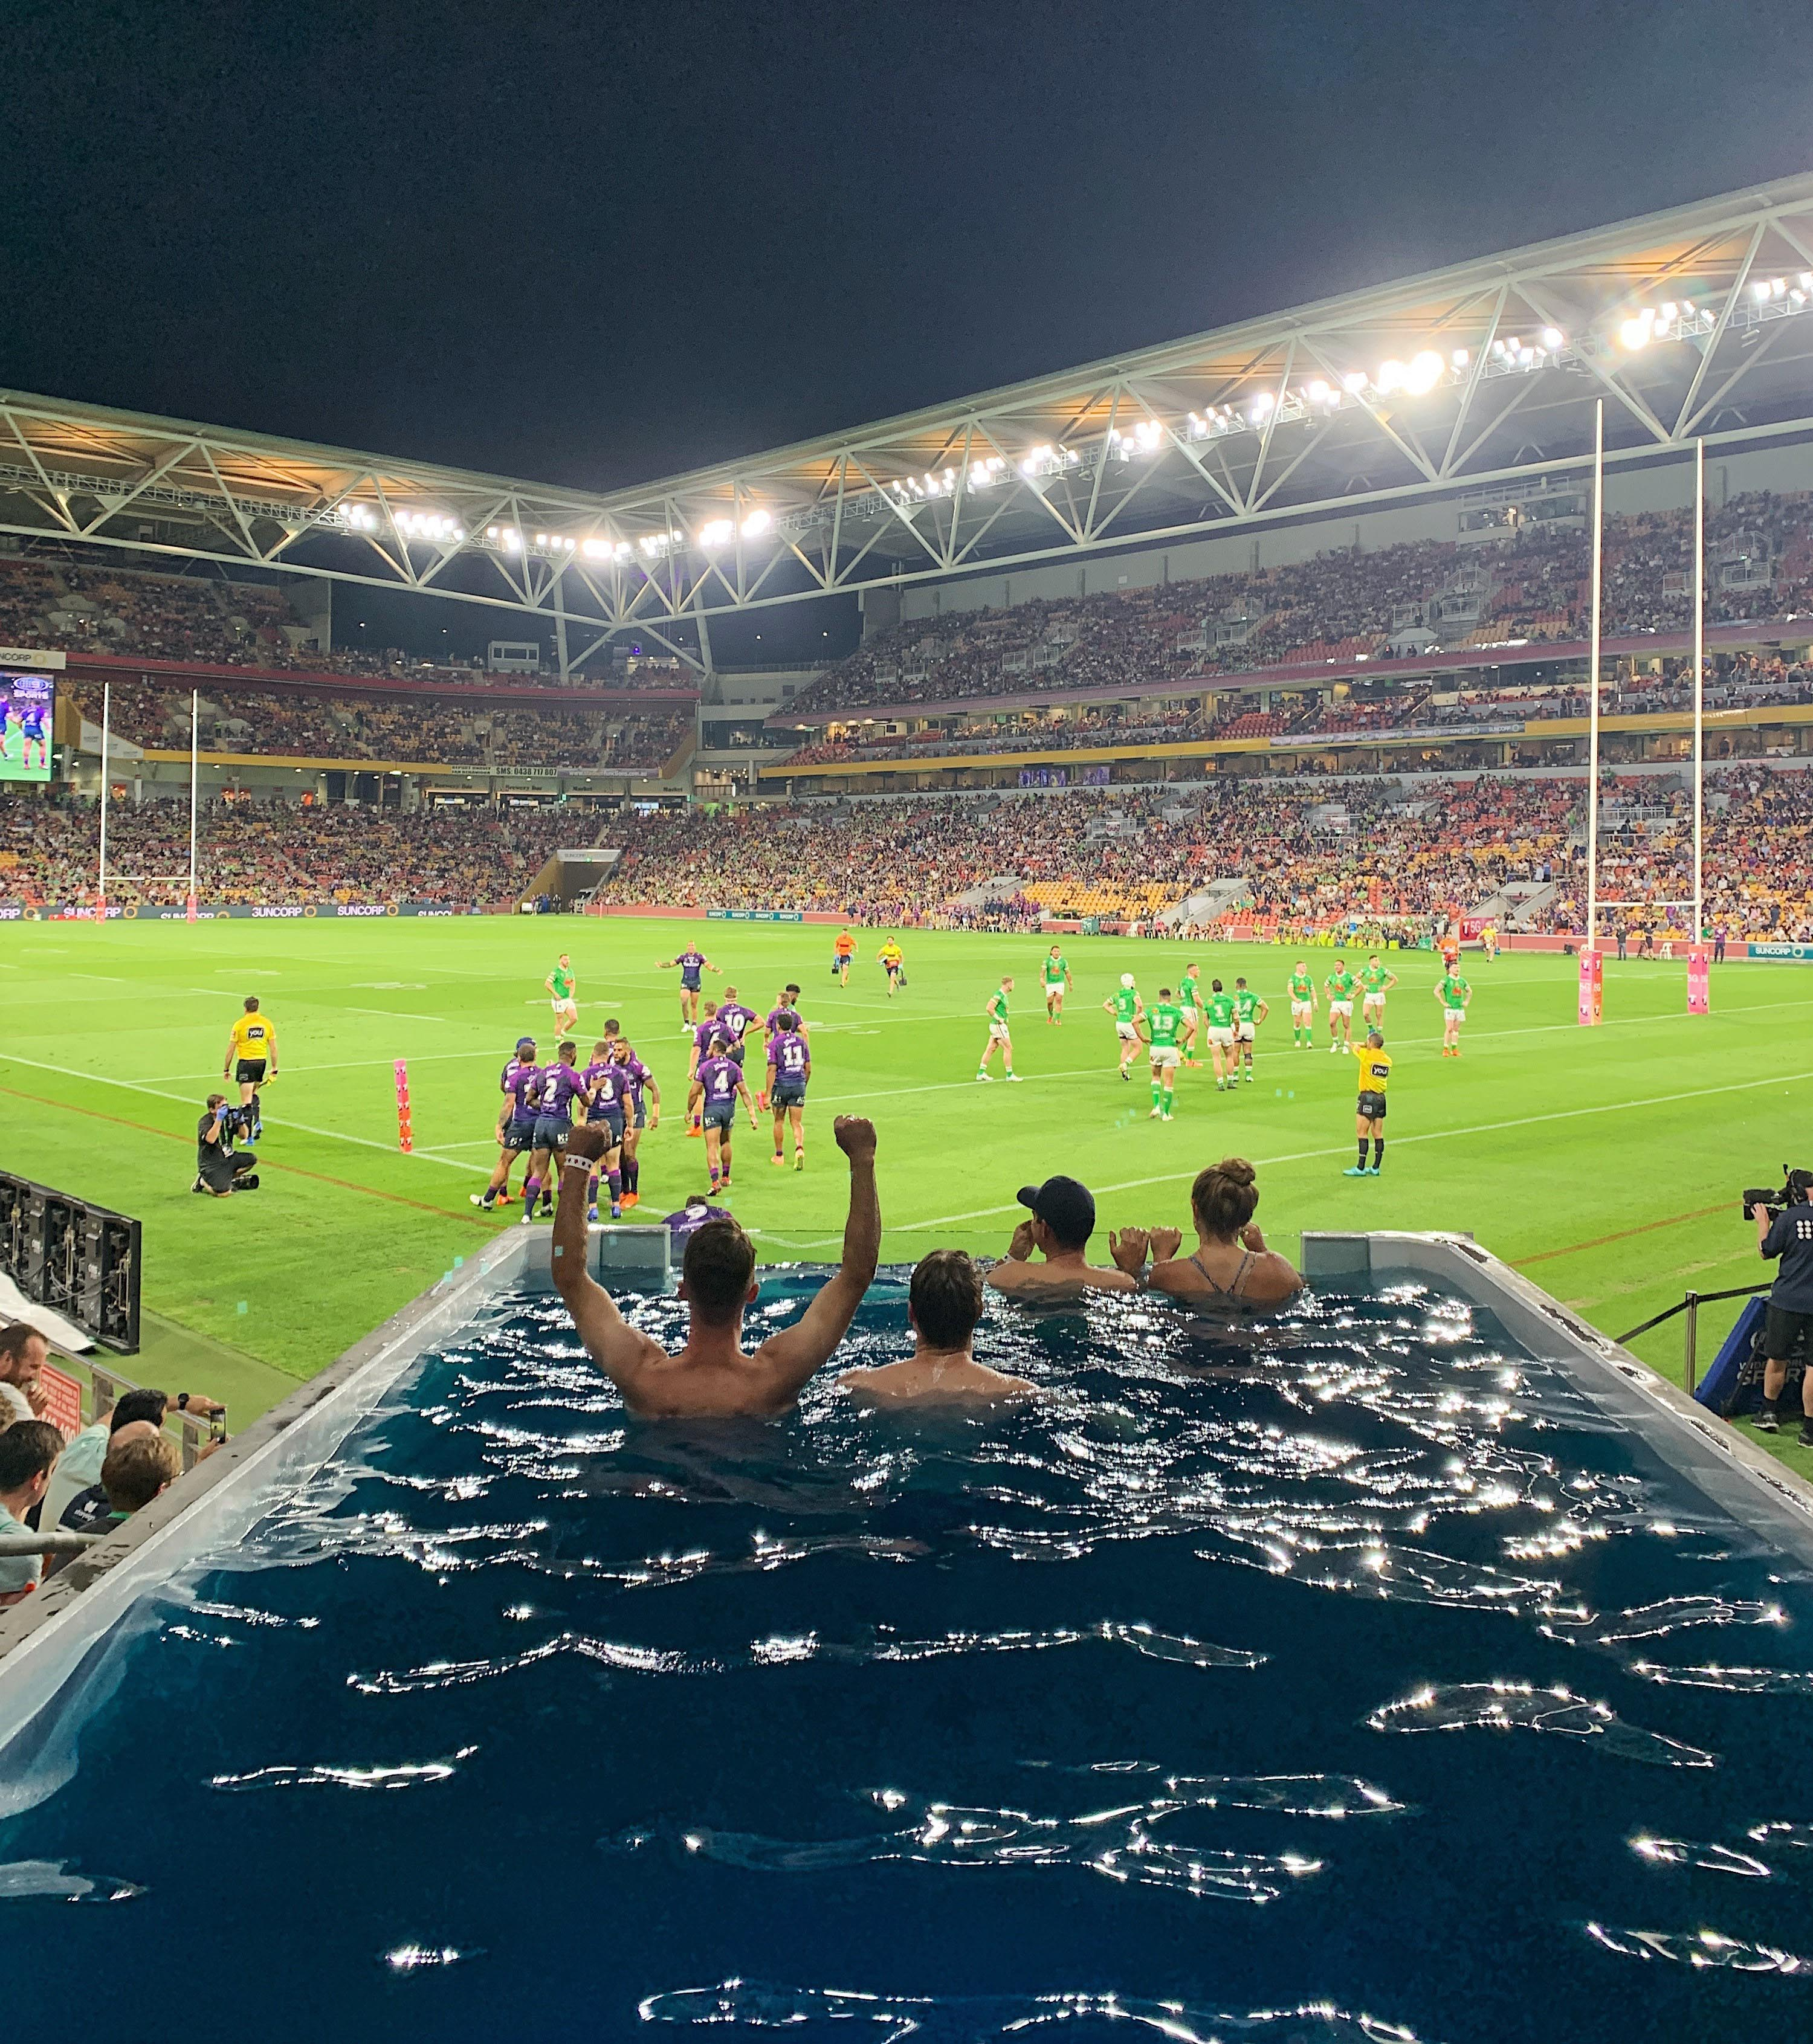 NRL fans in a Plungie pool at the NRL final at Suncorp Stadium.